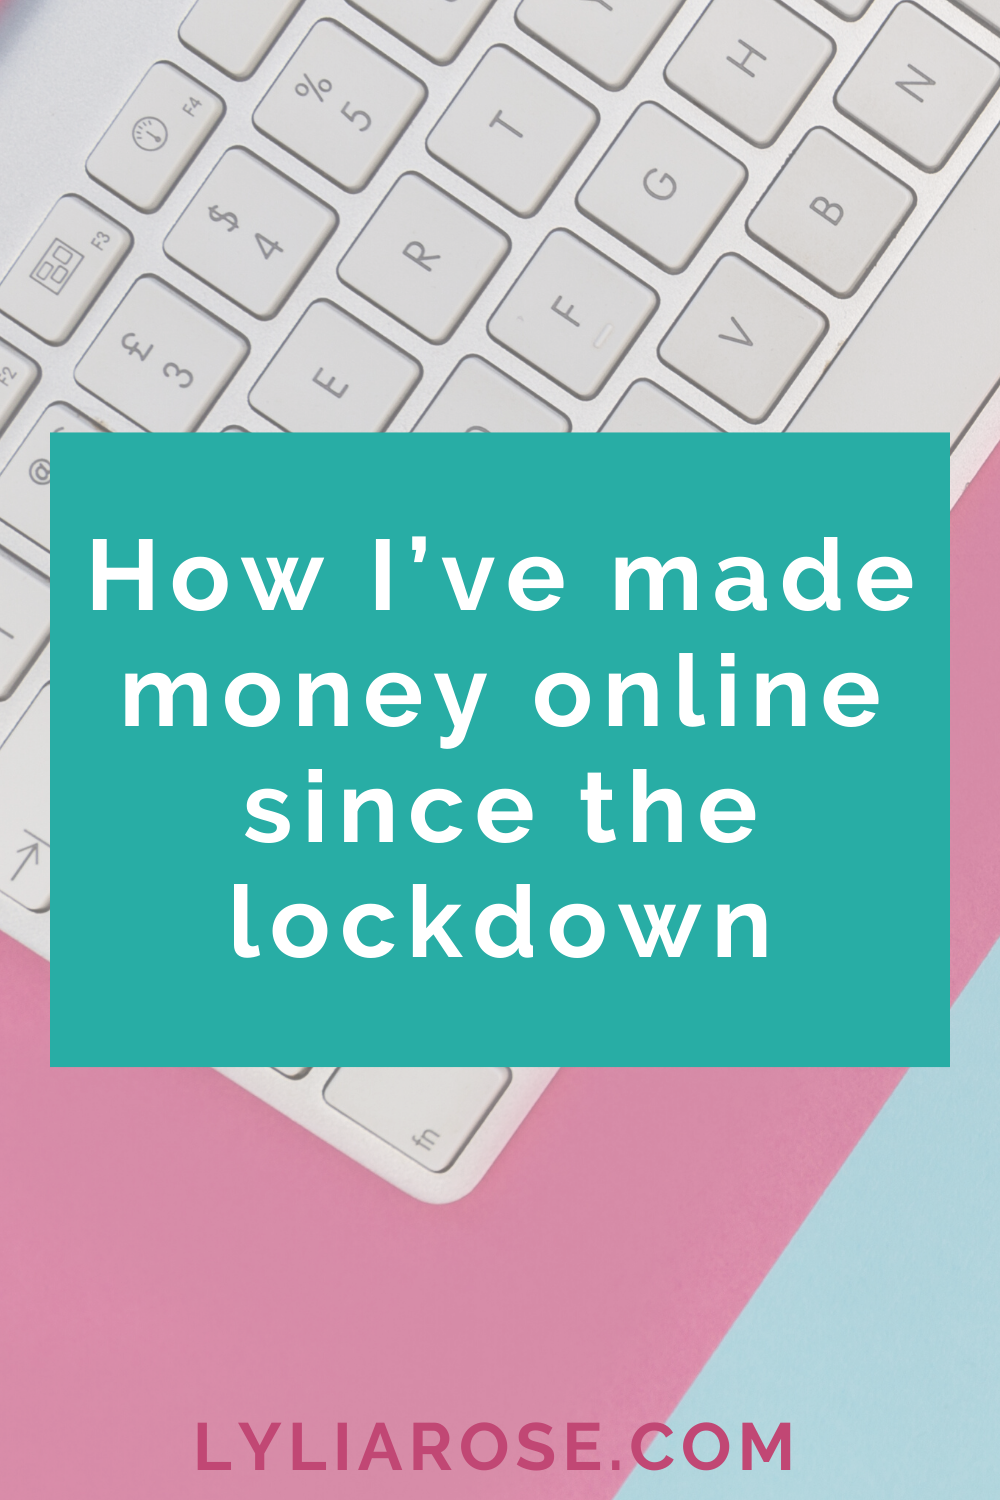 19 ways I've made money from home during the coronavirus lockdown (6)